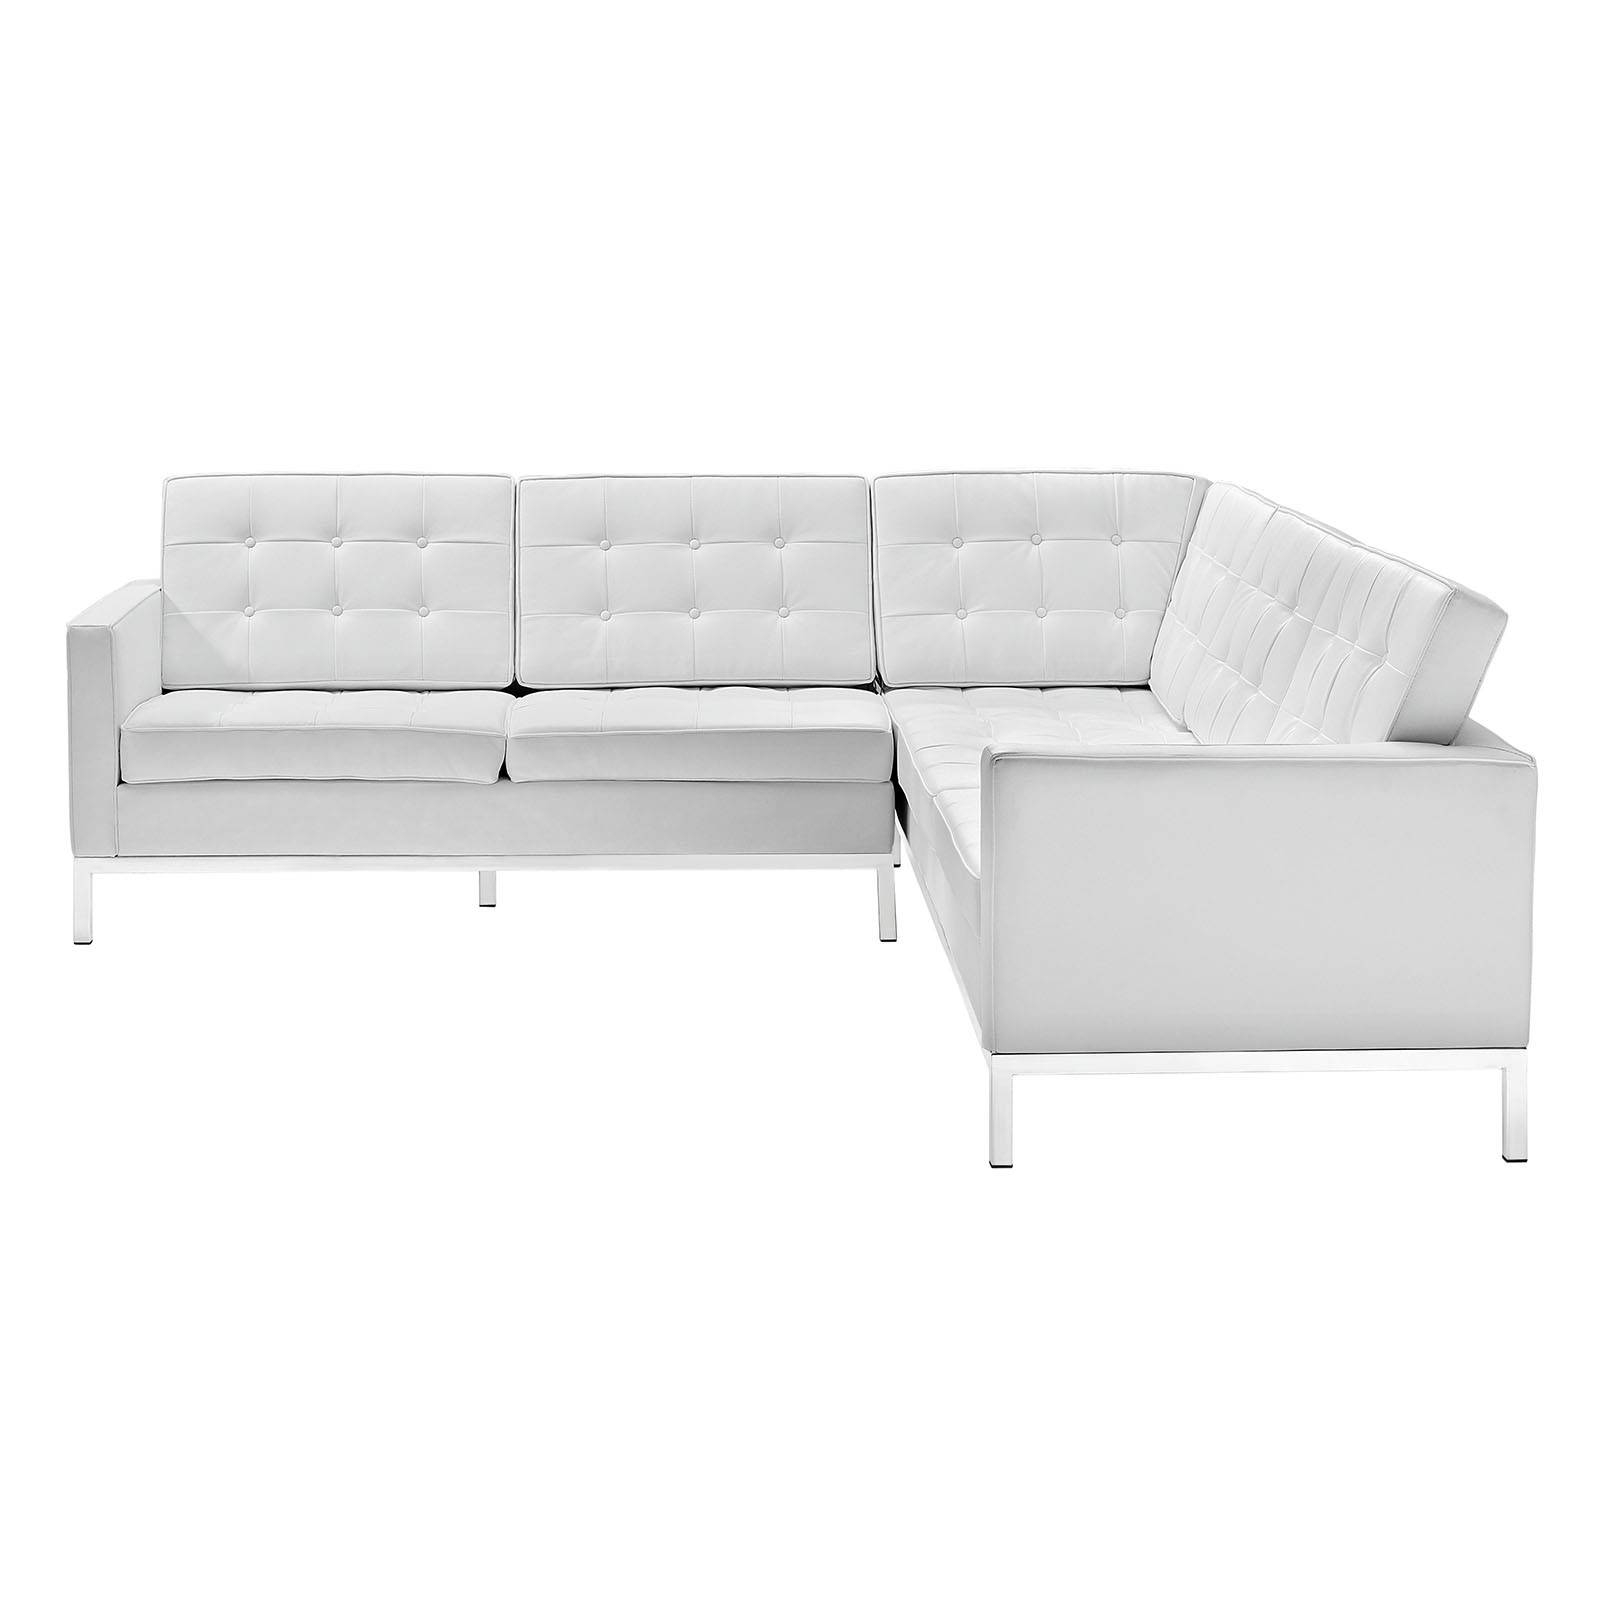 2019 Latest Leather L Shaped Sectional Sofas